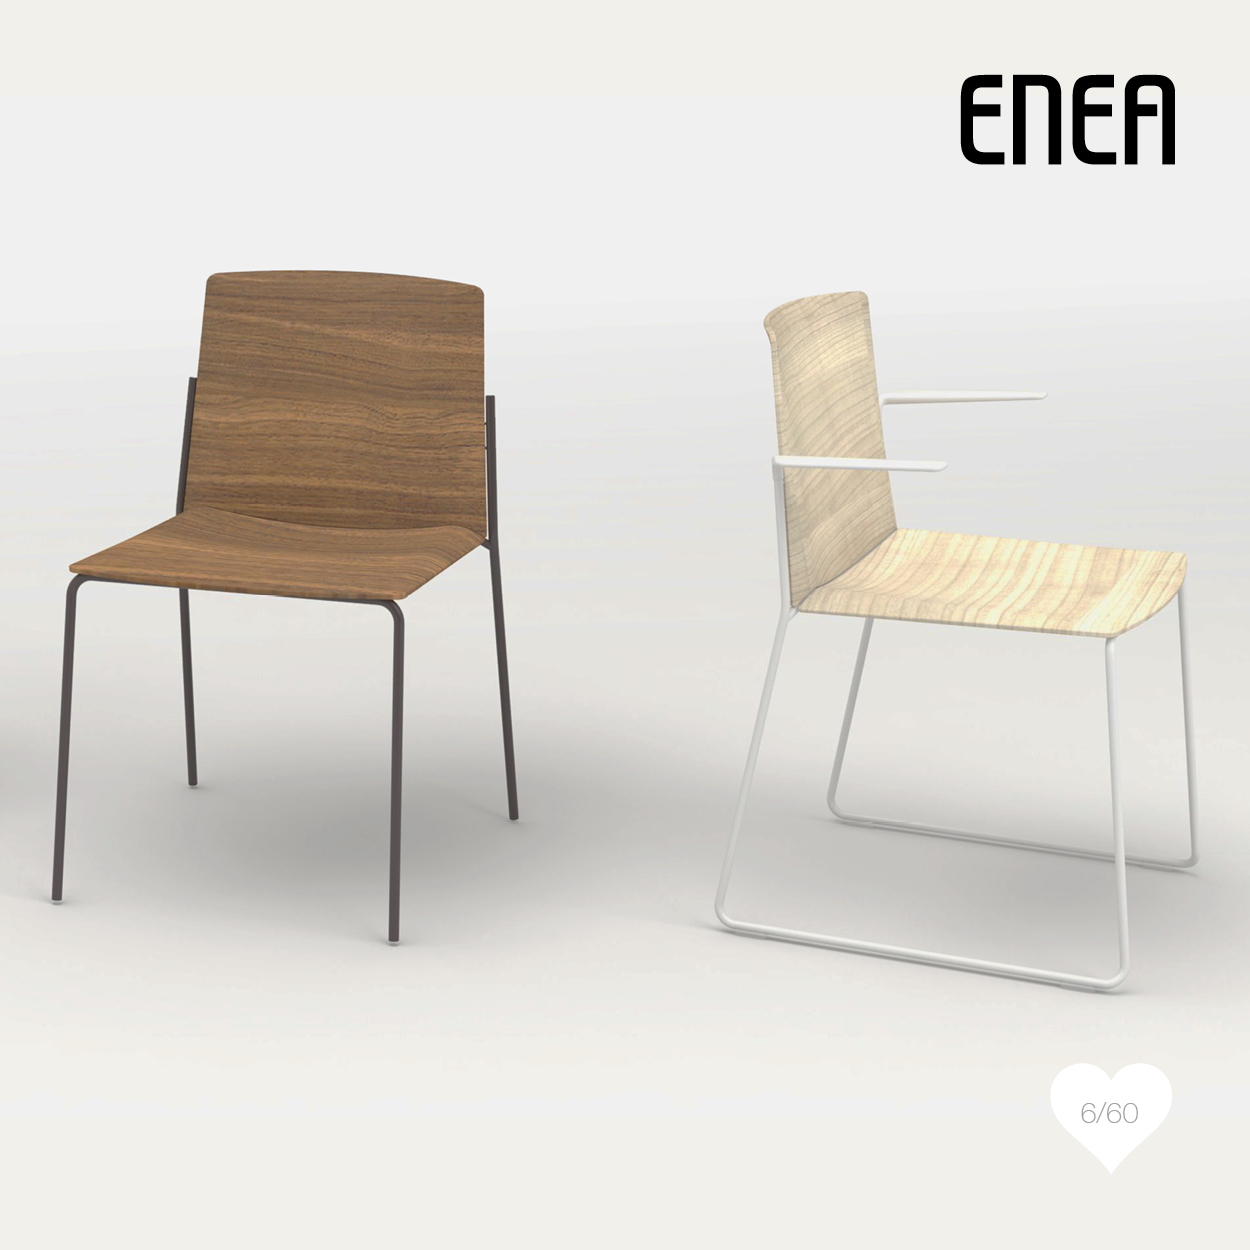 The latest from Enea ...